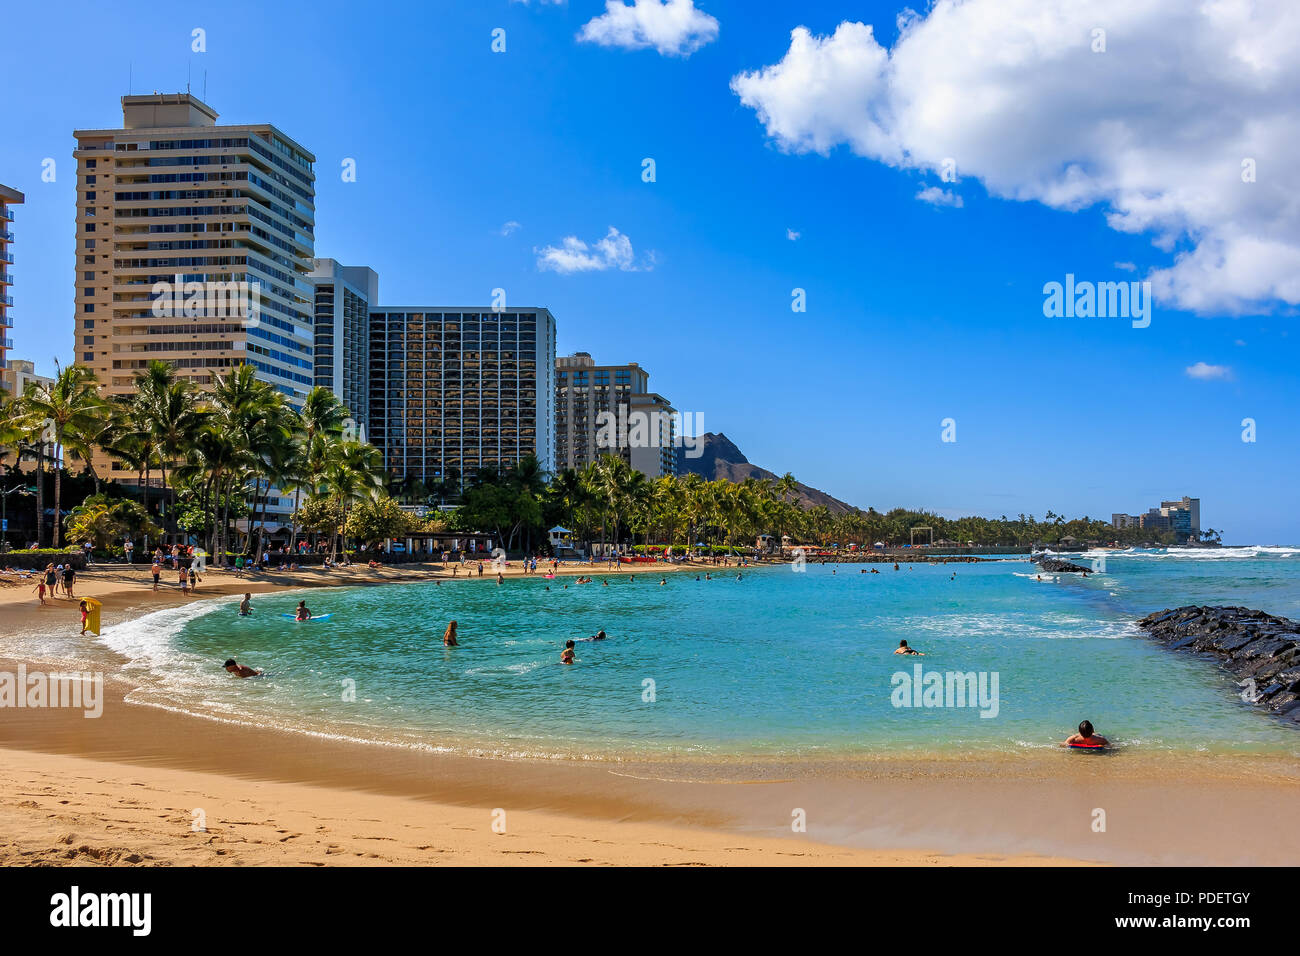 24 fois vue sur Waikiki Beach et Diamond Head à Honolulu à Hawaii, USA Photo Stock